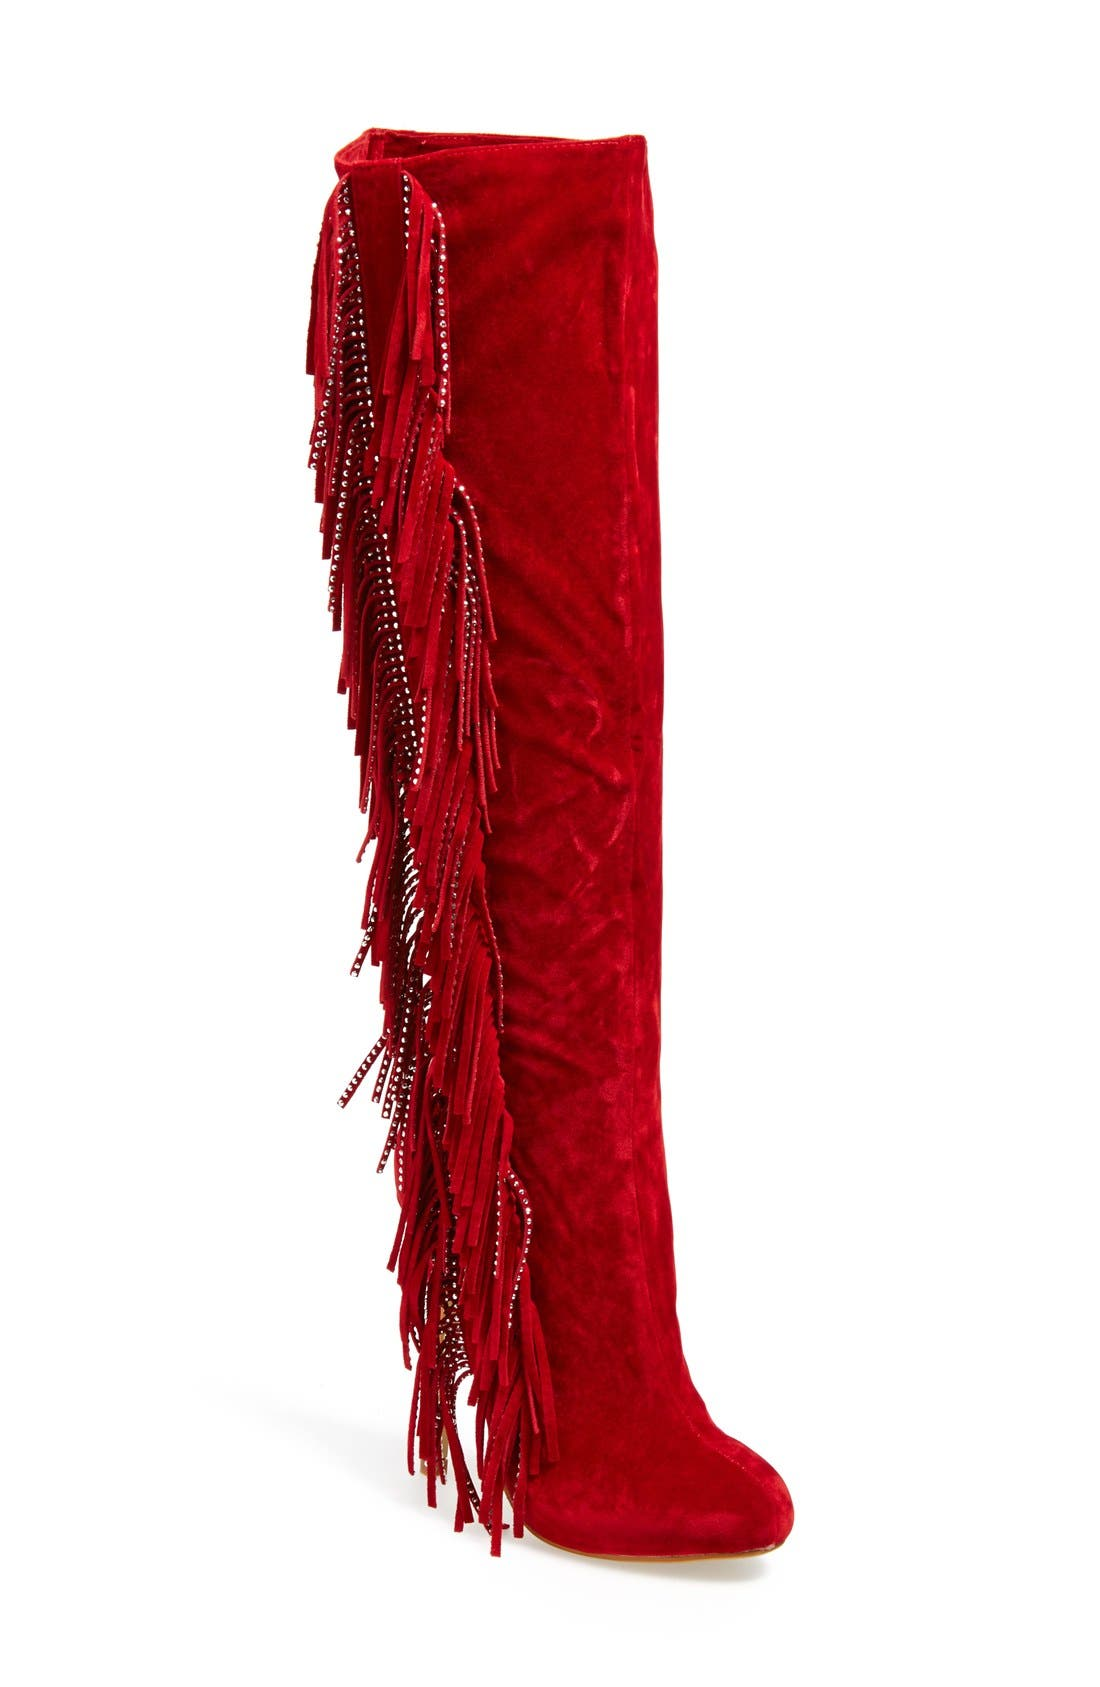 Alternate Image 1 Selected - Lauren Lorraine 'Dolly' Fringe Boot (Women)